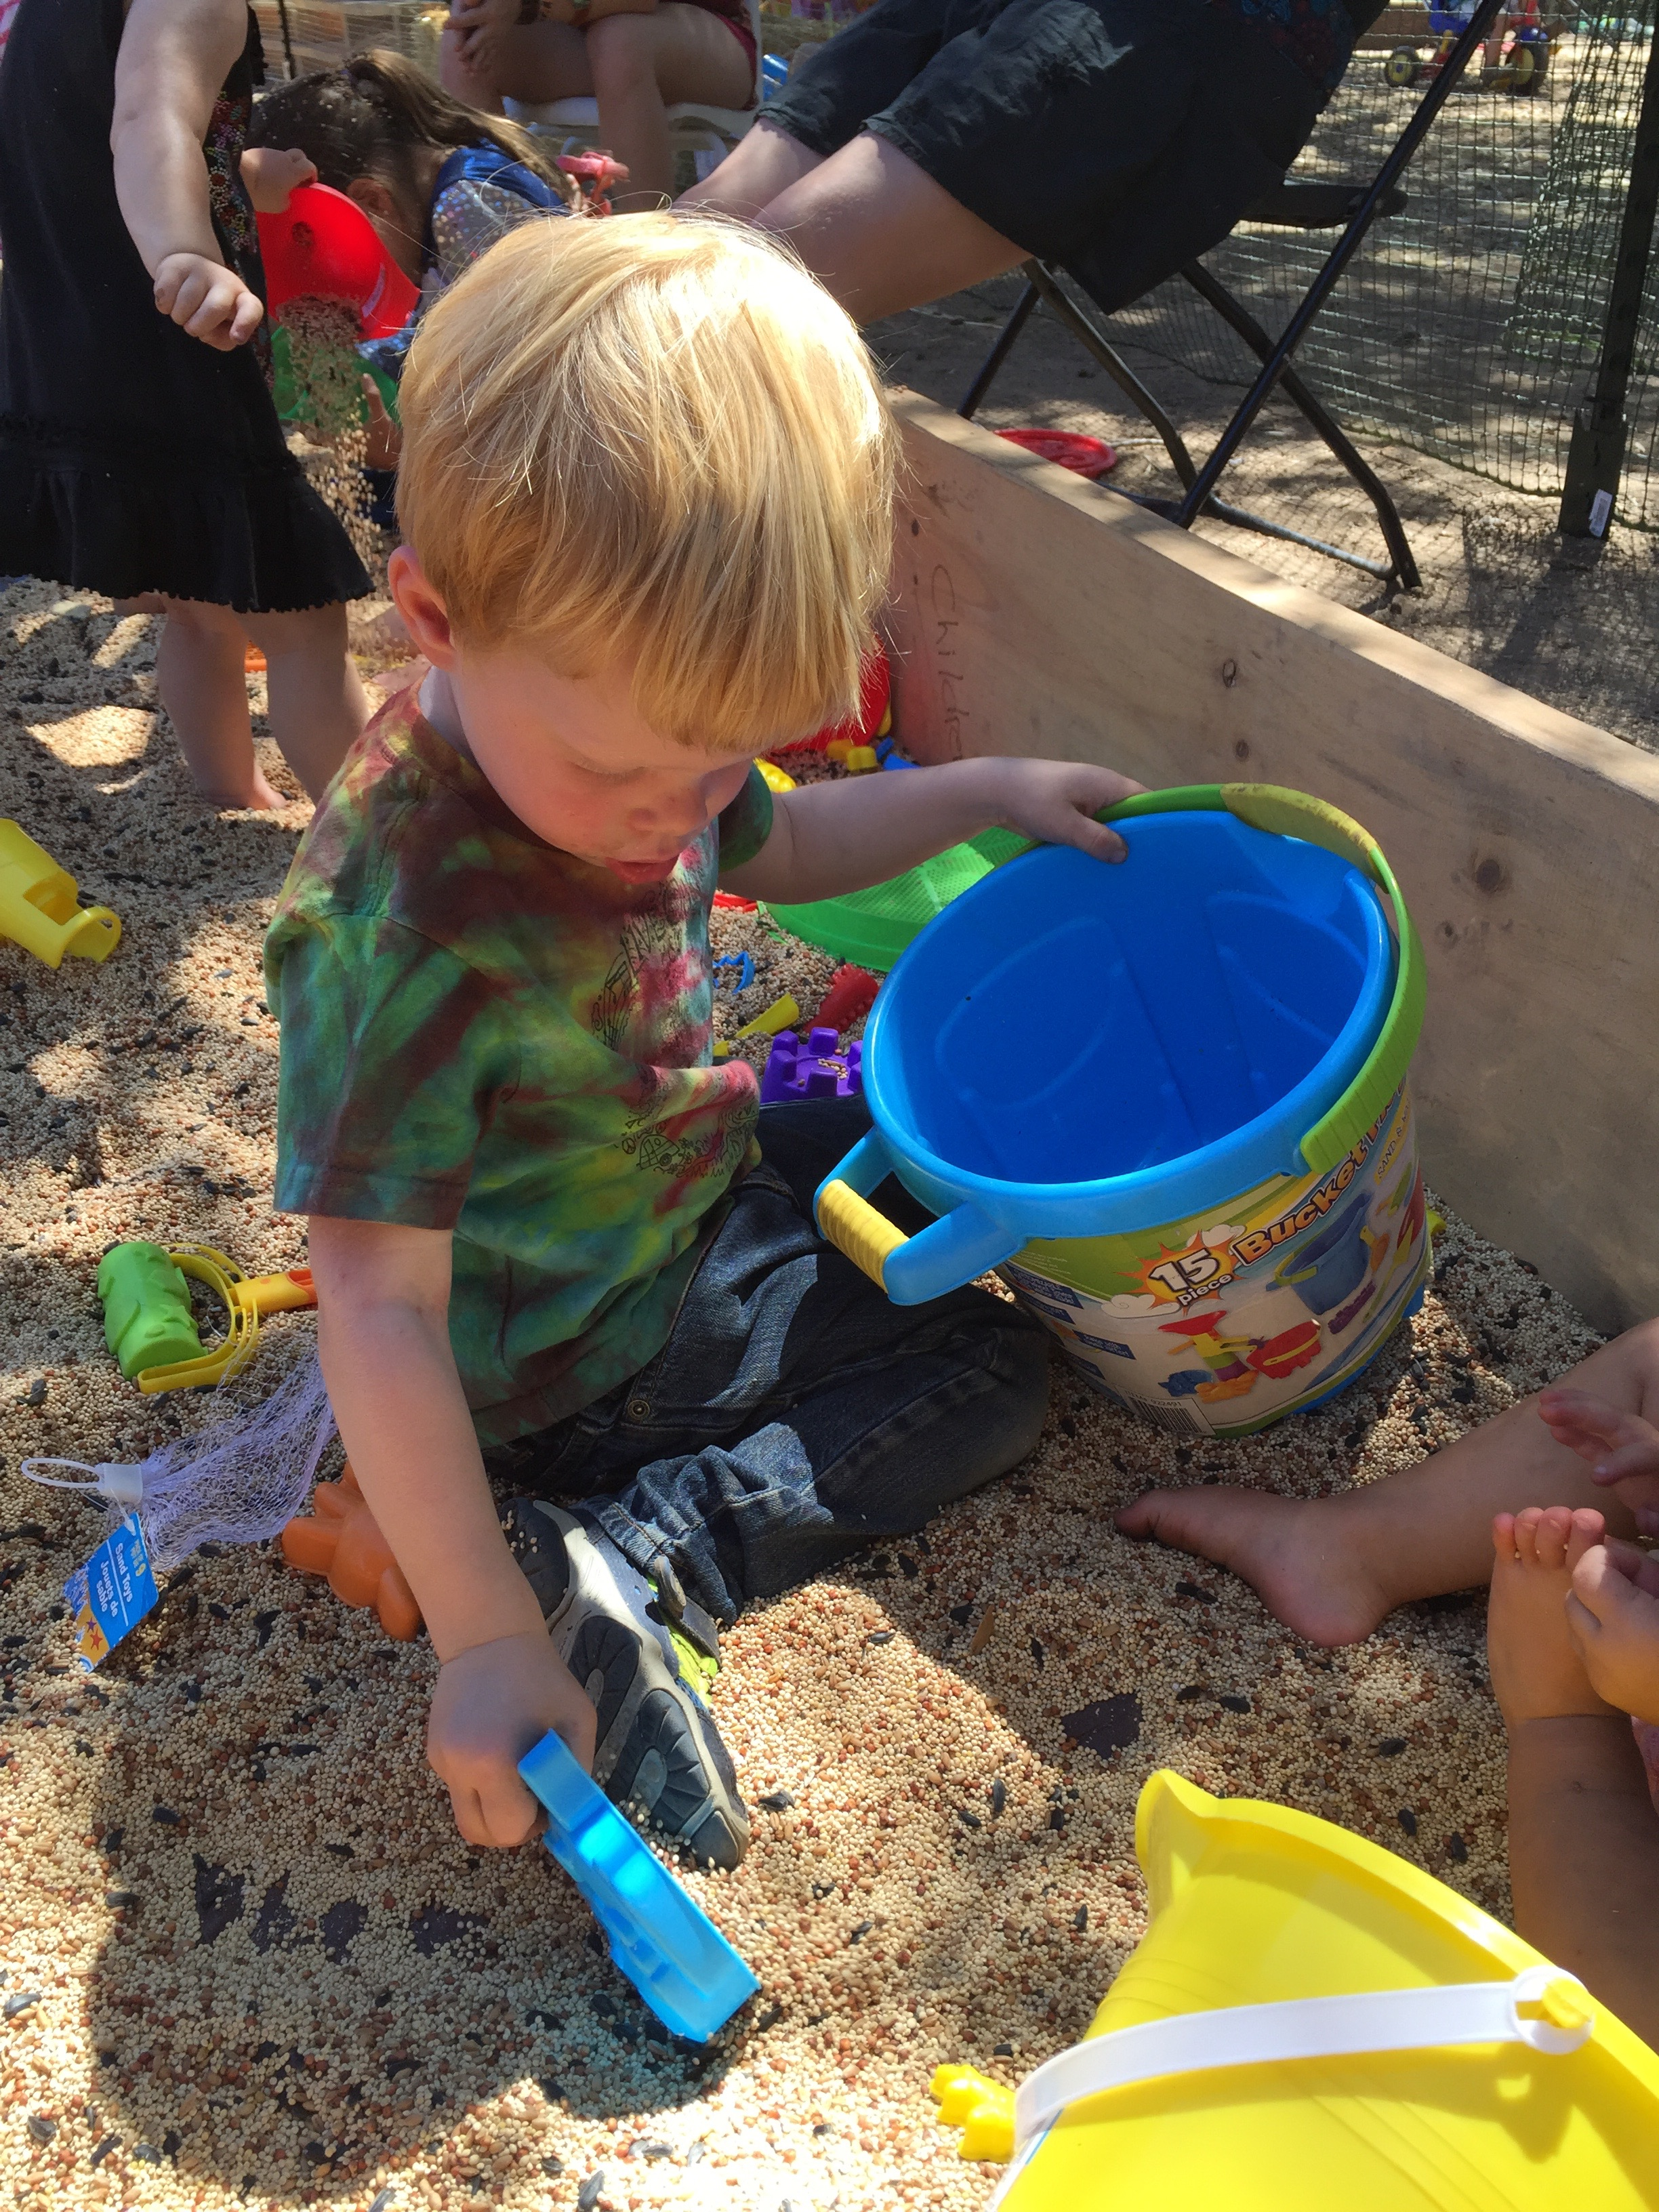 Little Acorns Toddler Oasis - The Toddler Oasis for our littlest Acorn Oakies includes toys and crafts. Returning is our popular birdseed box and lounging Adirondacks for parents.